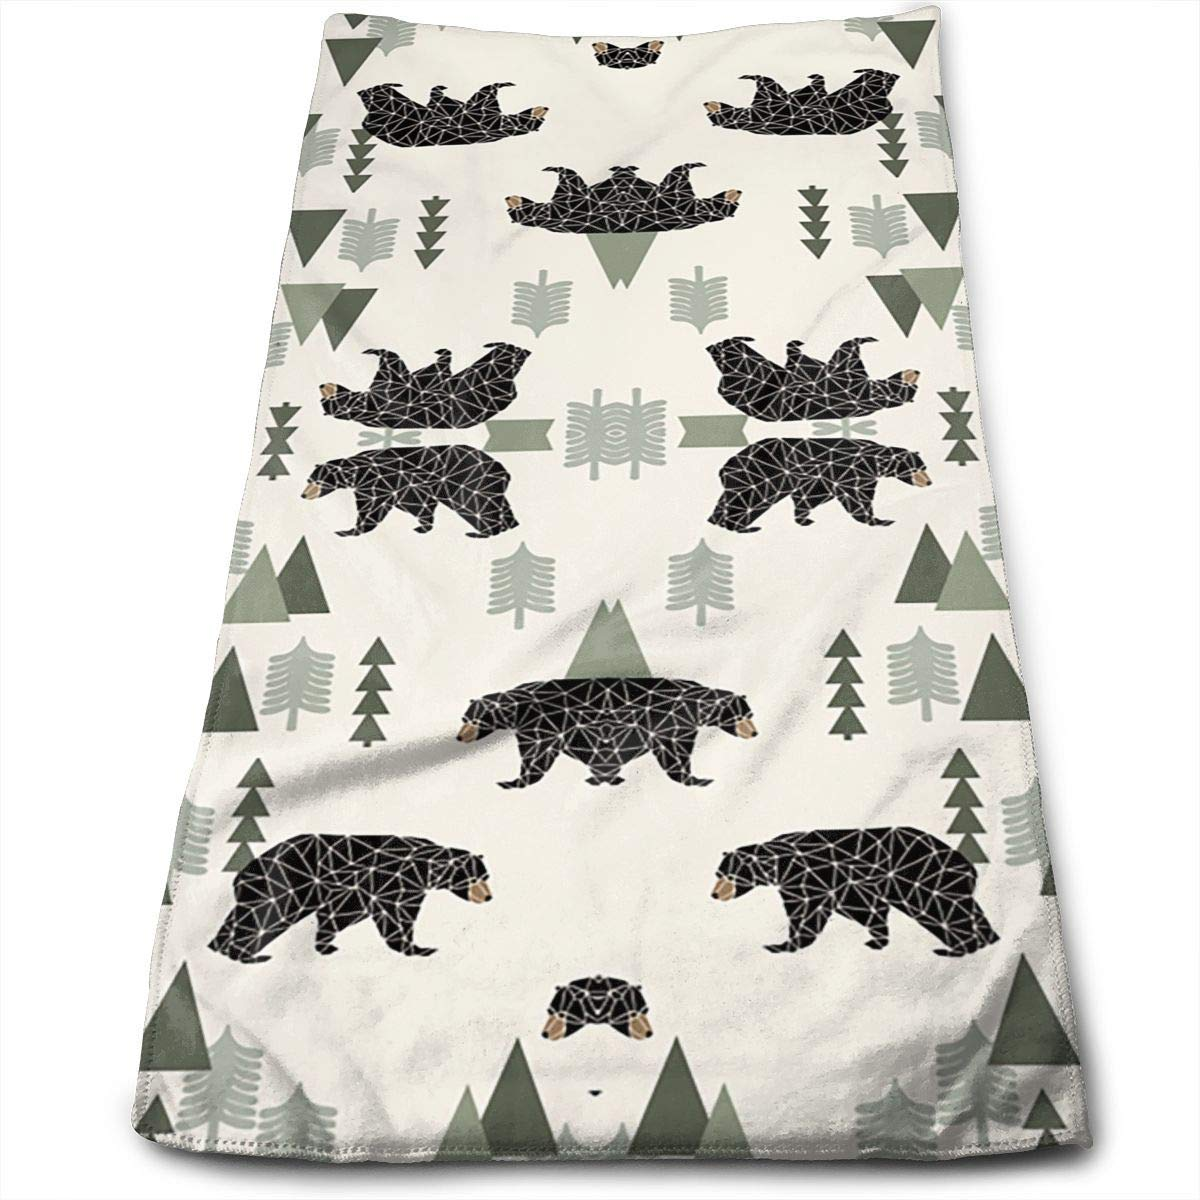 OQUYCZ Forest Bear Neutral Forest Mountain Multi-Purpose Microfiber Towel Ultra Compact Super Absorbent and Fast Drying Sports Towel Travel Towel Beach Towel Perfect for Camping, Gym, Swimming.